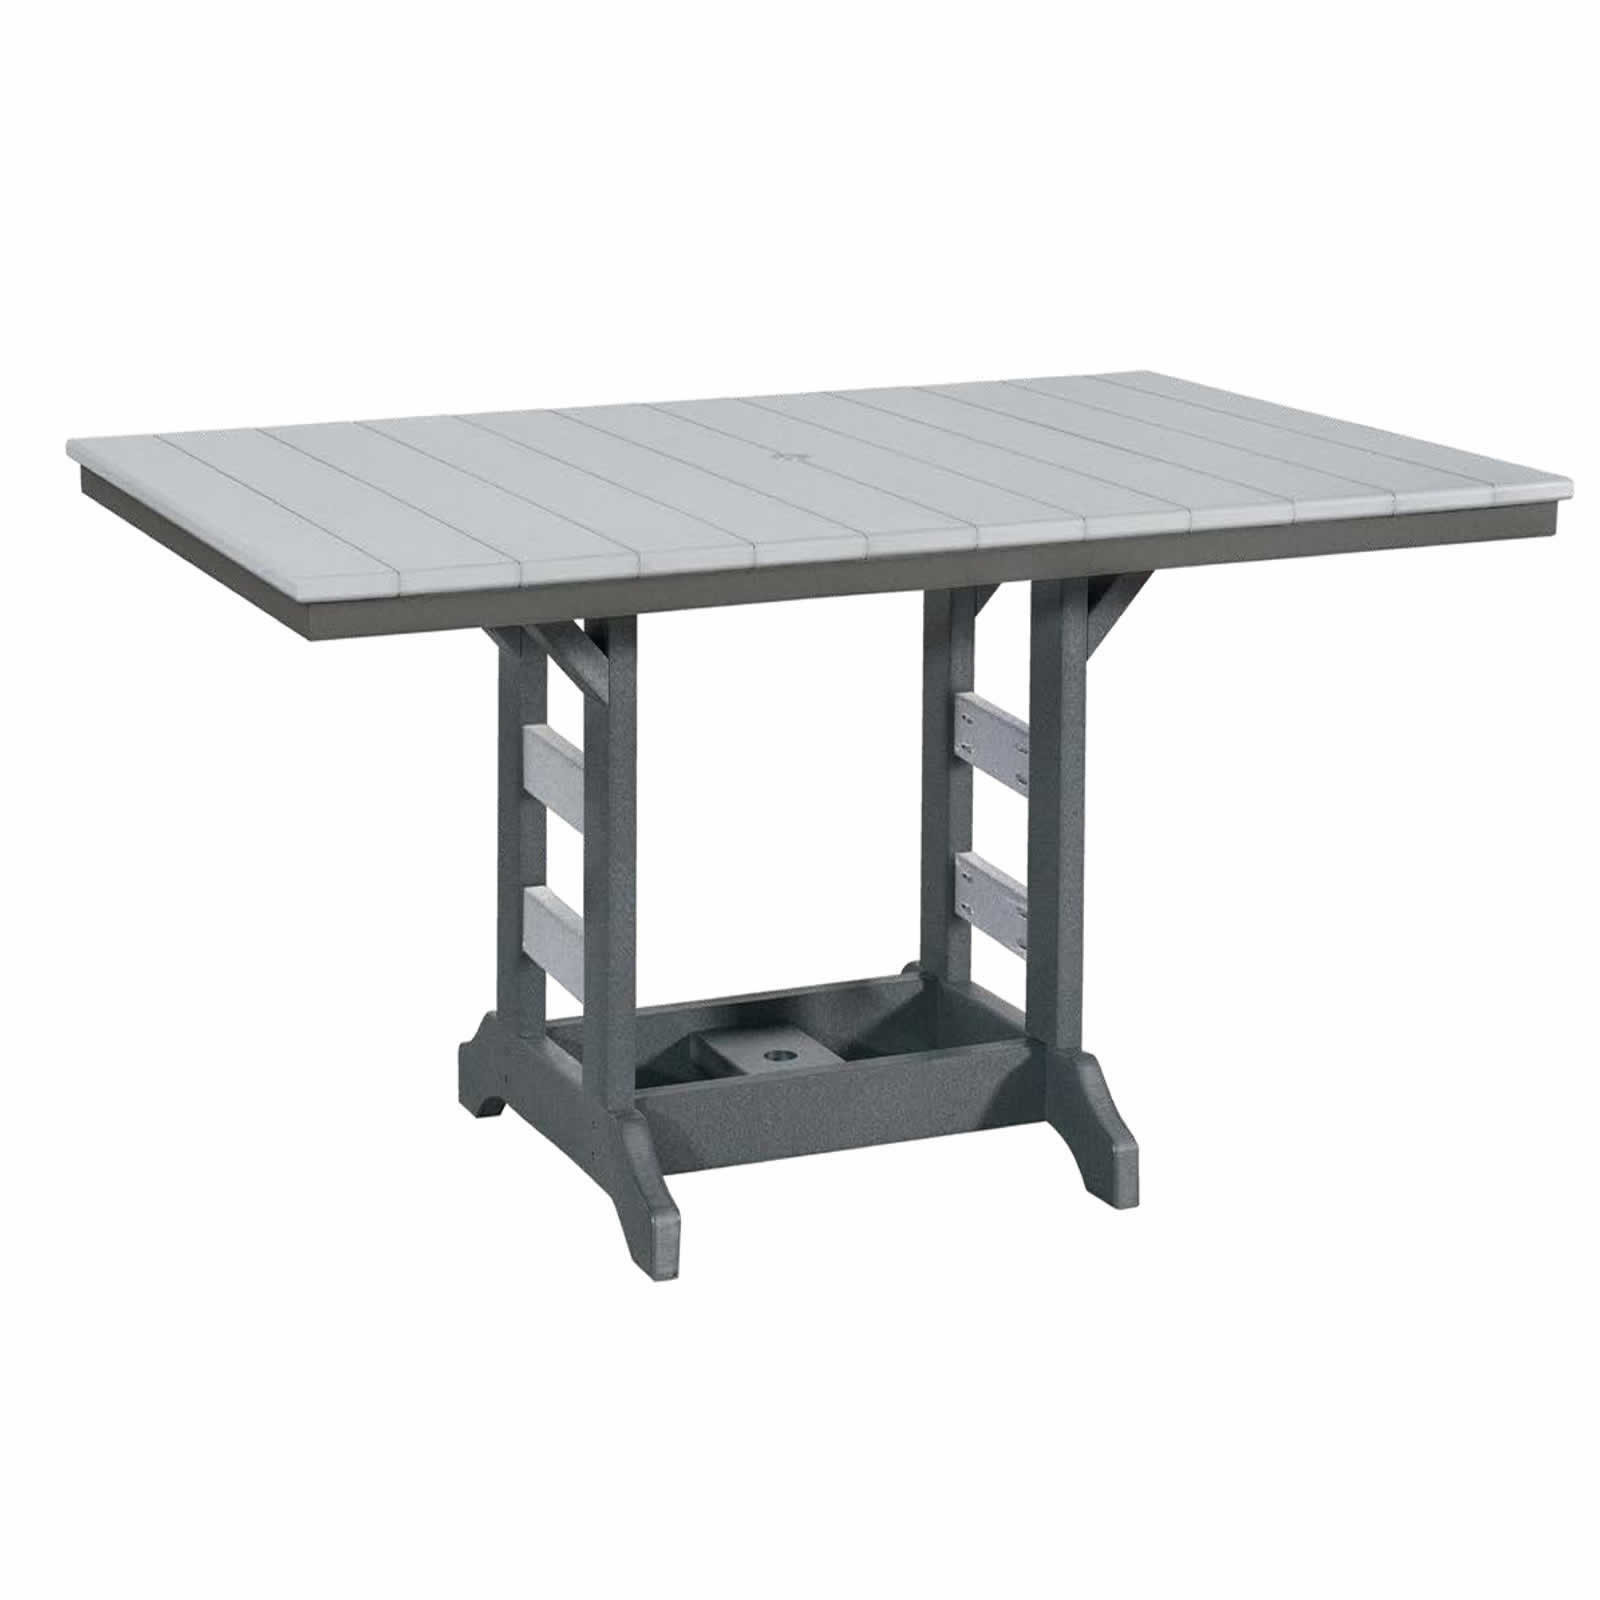 Indiana Amish Poly 42in x 64in Rectangle Balcony Table